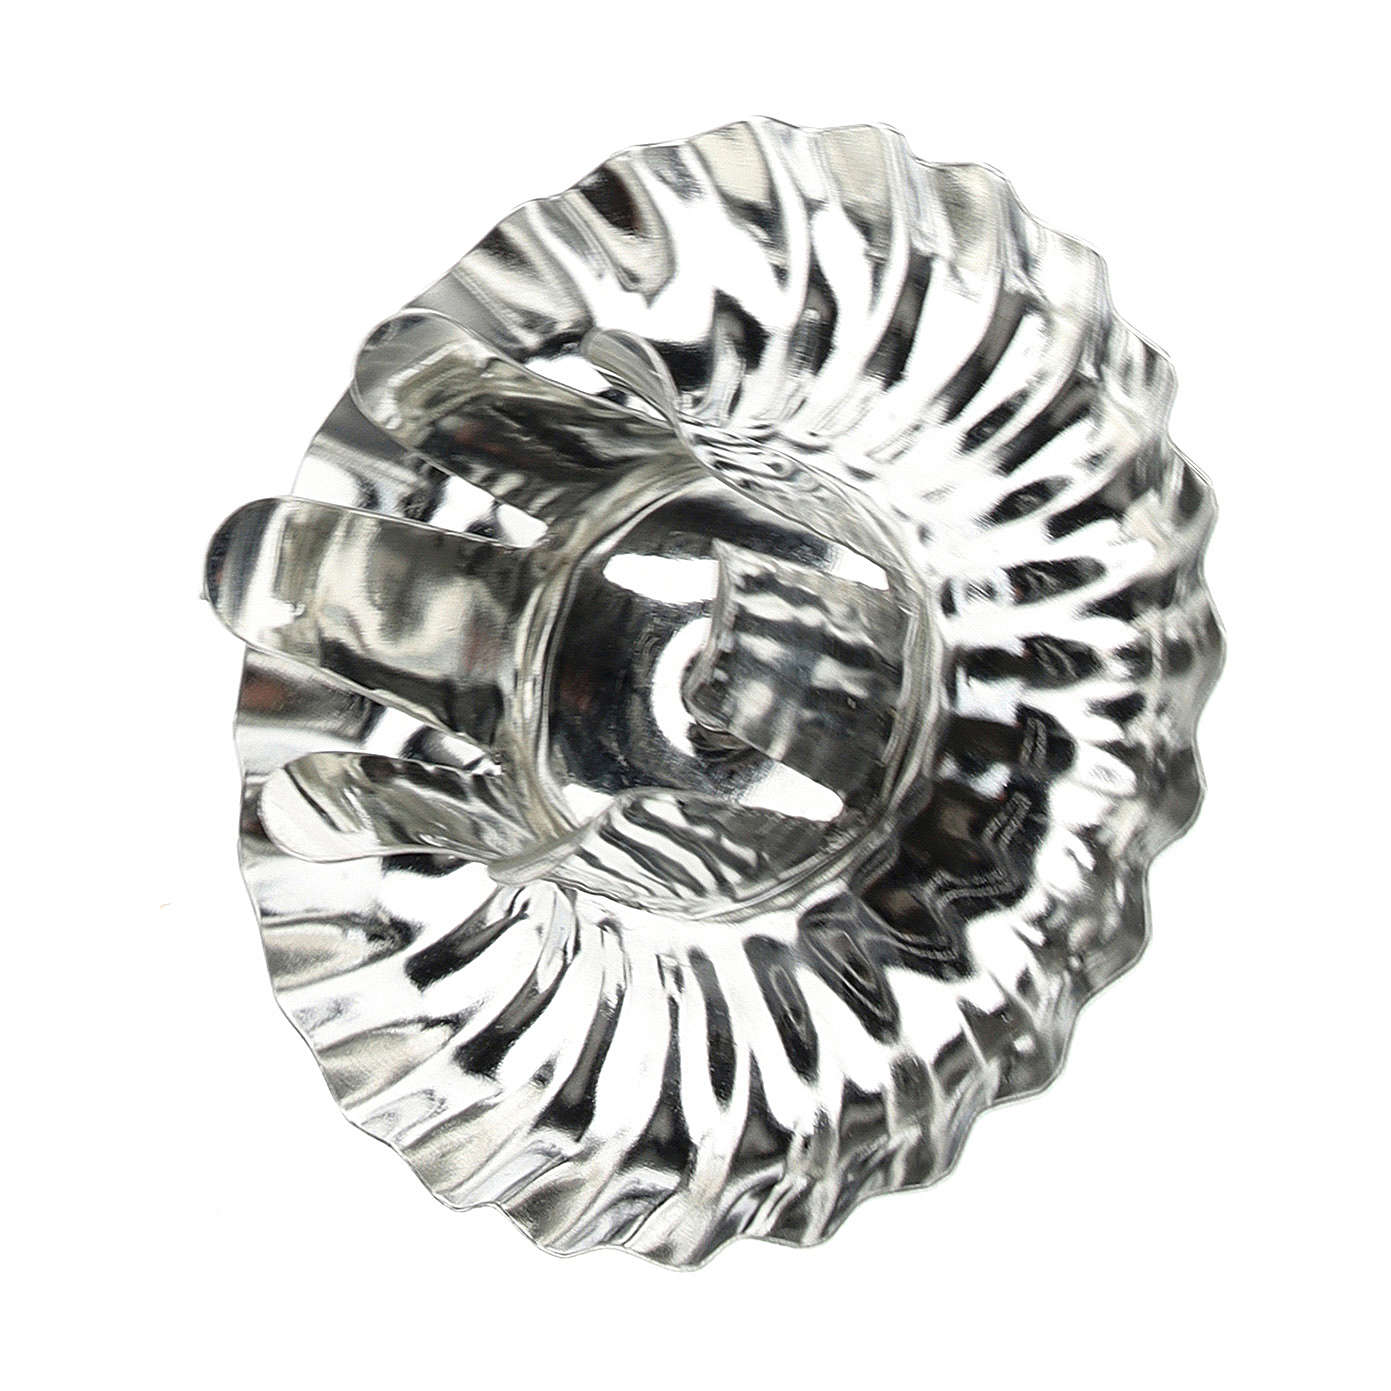 Candle holder for Advent wreath, set of 4 pcs, silver flower-shaped 5 cm 3